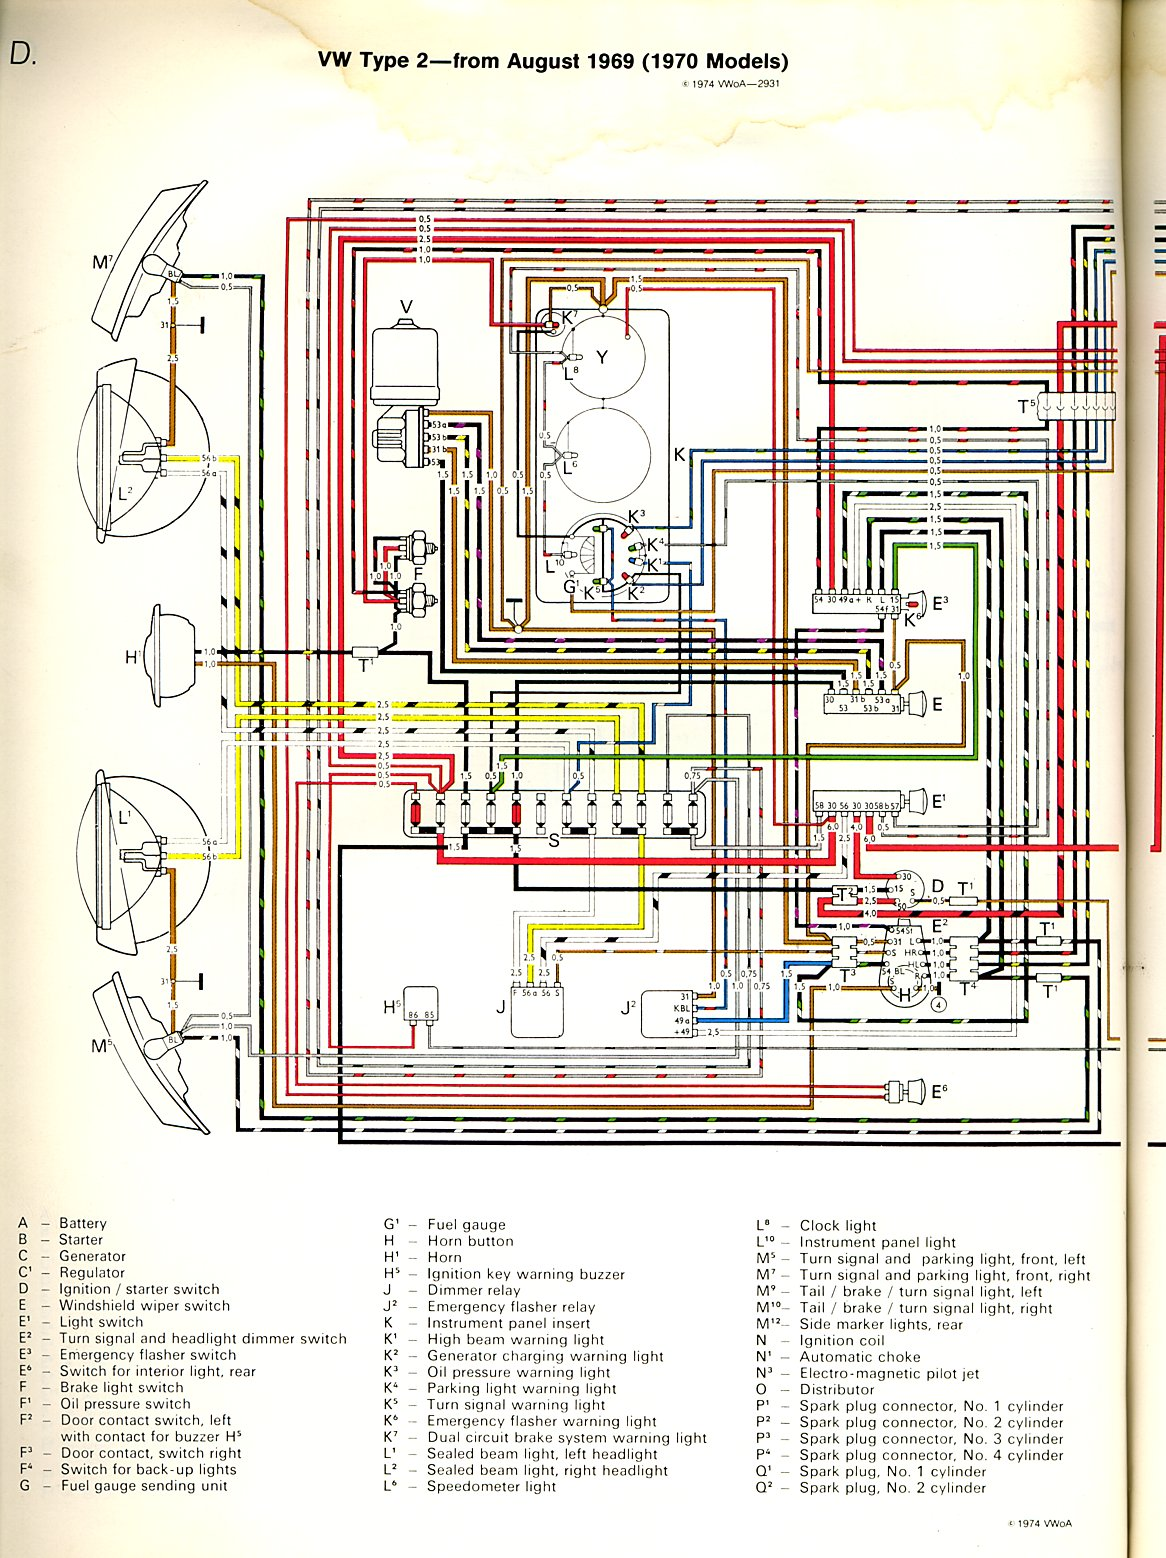 Type 2 Wiring Diagrams 65 Mustang Tail Light Diagram Schematic